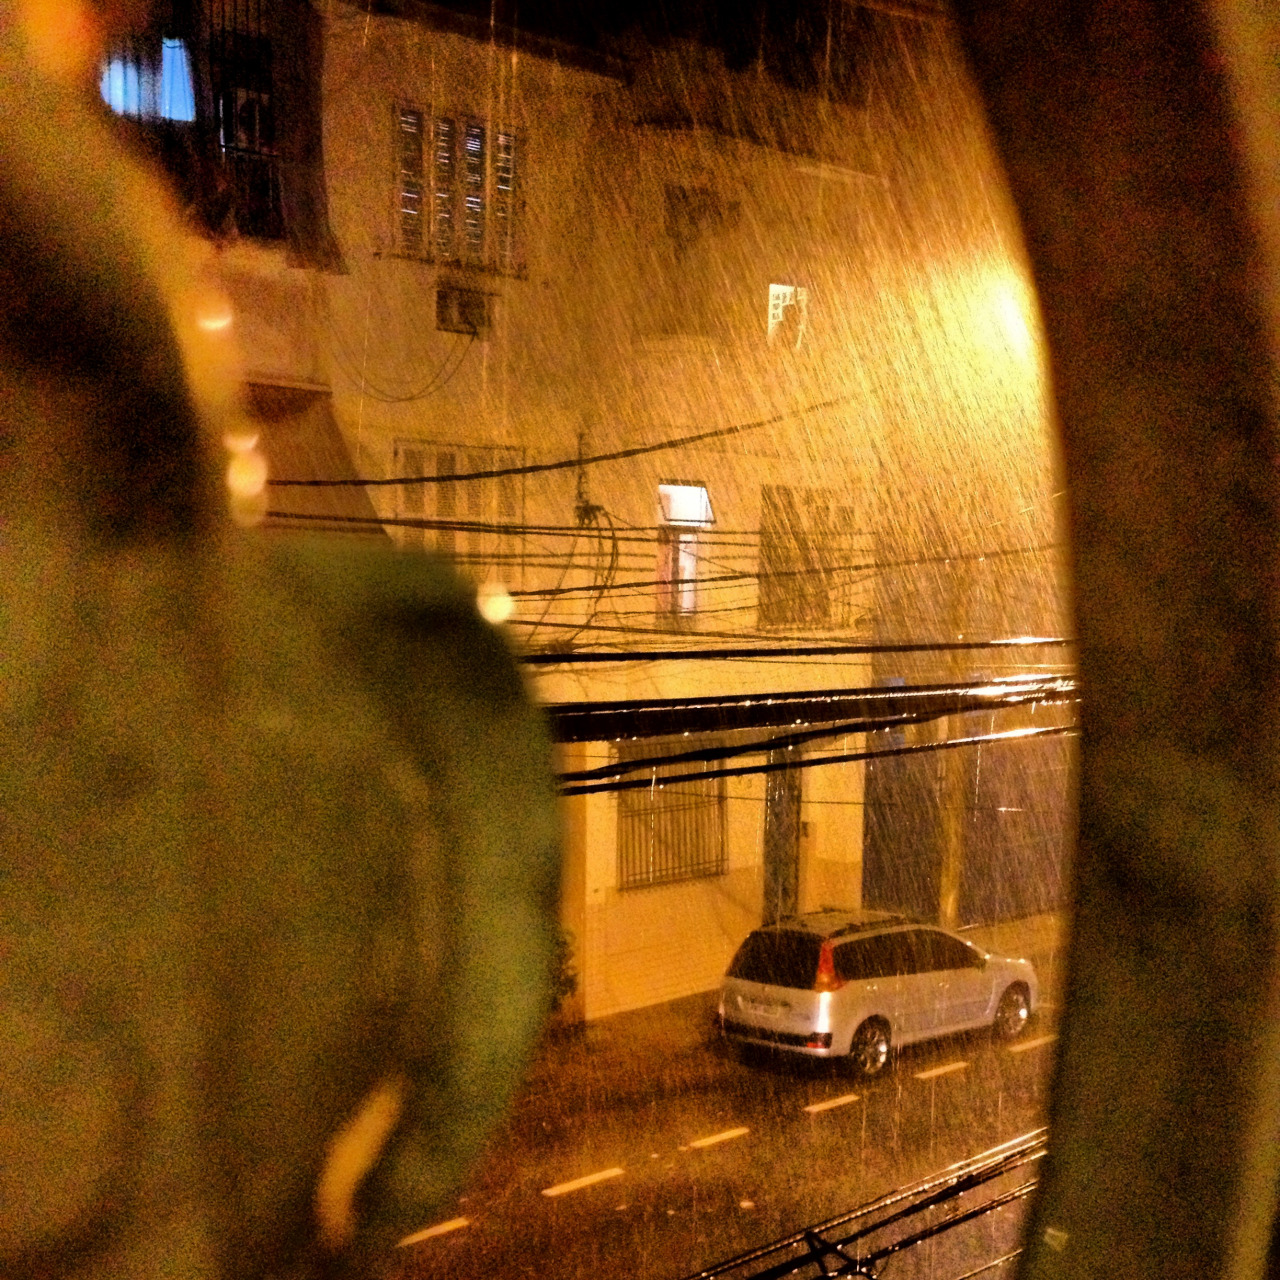 The beautiful rain at night from my window.